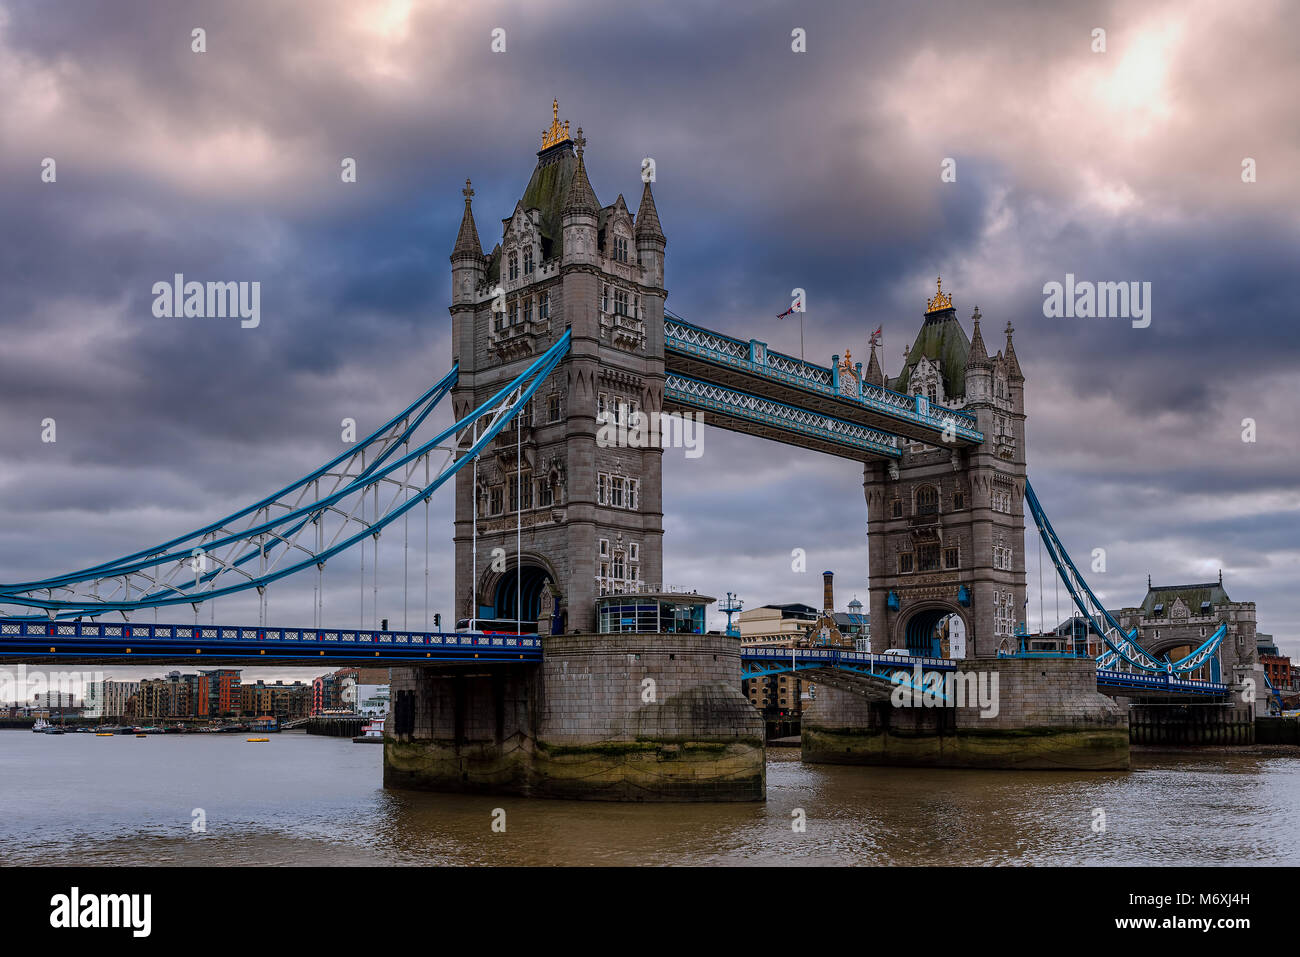 Famous Tower Bridge under cloudy sky in London, UK. - Stock Image